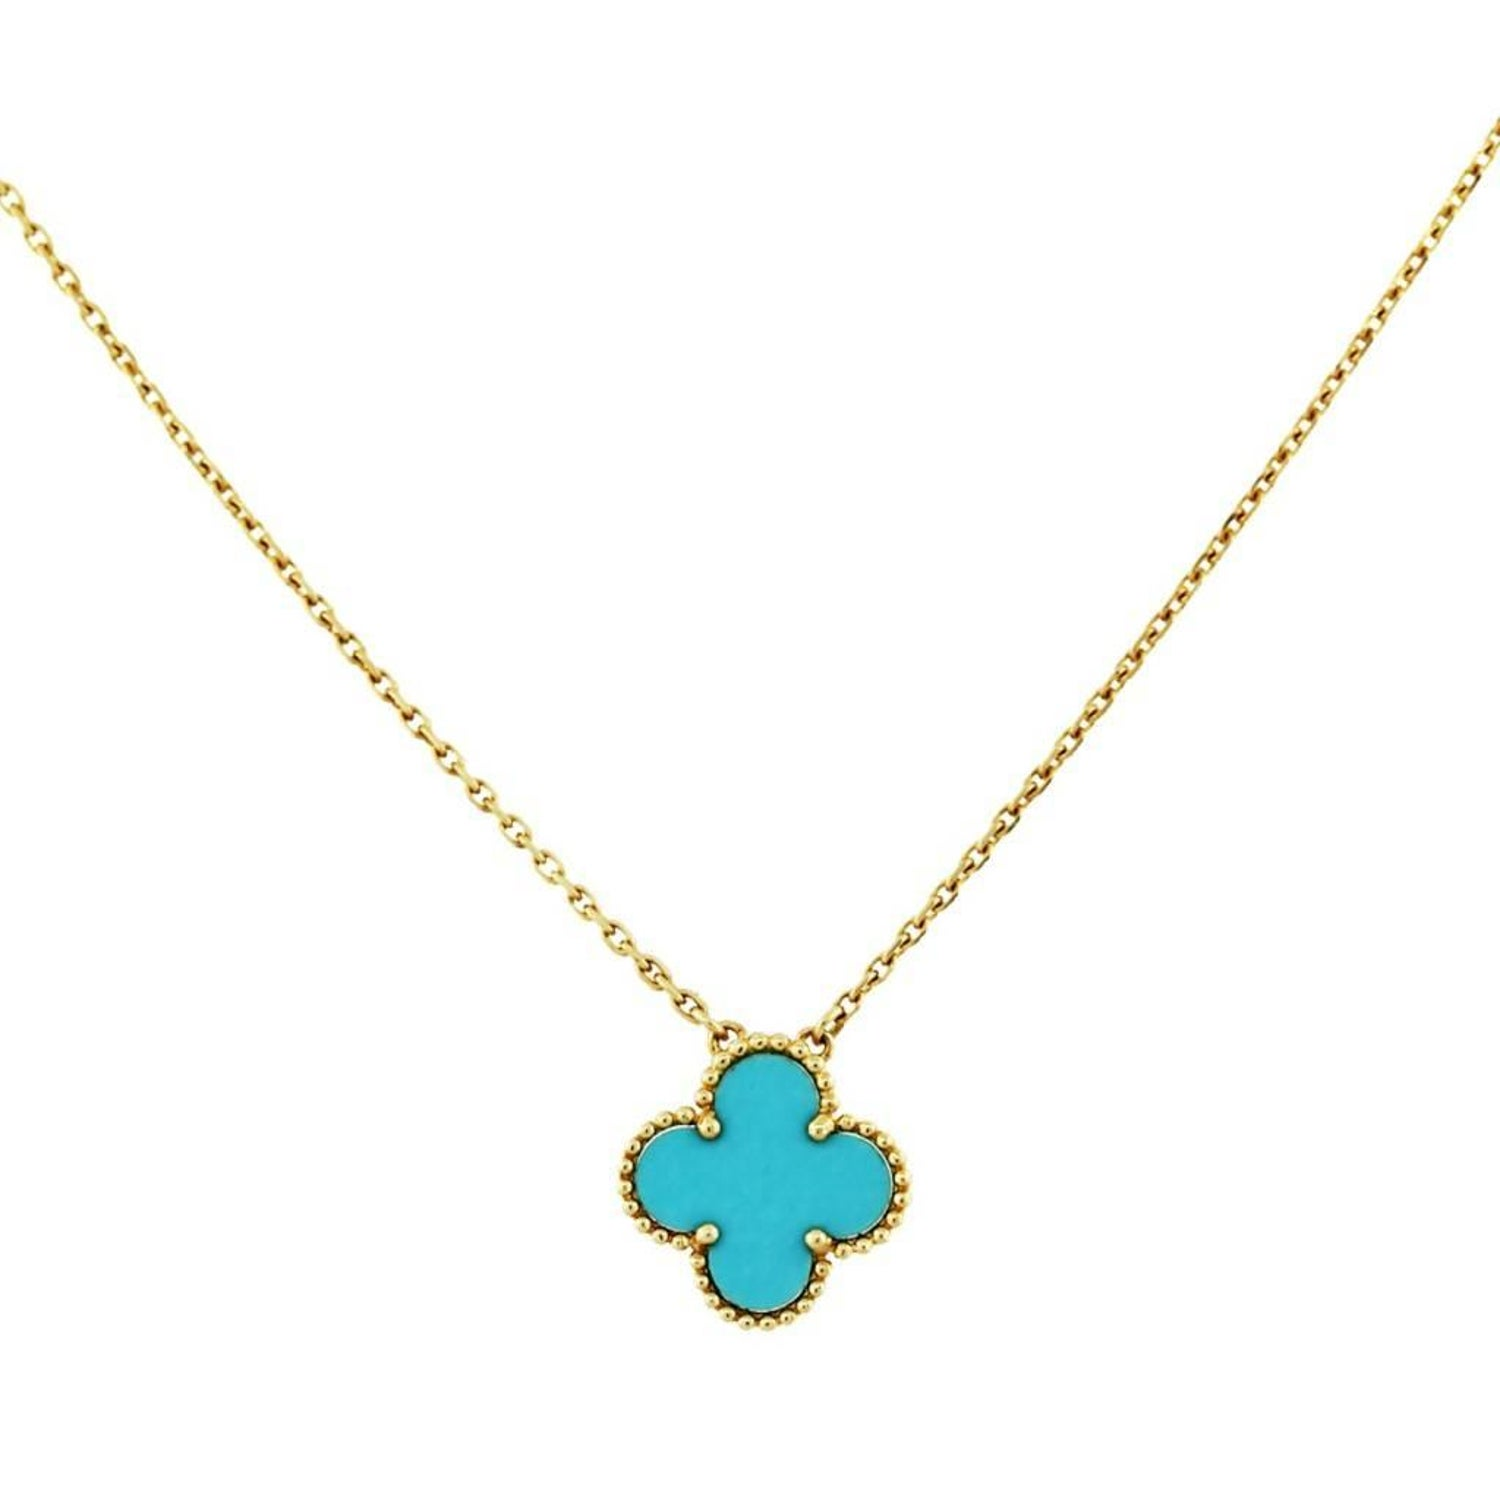 6cab3c942ad3 Van Cleef and Arpels Vintage Alhambra Turquoise Yellow Gold Necklace at  1stdibs